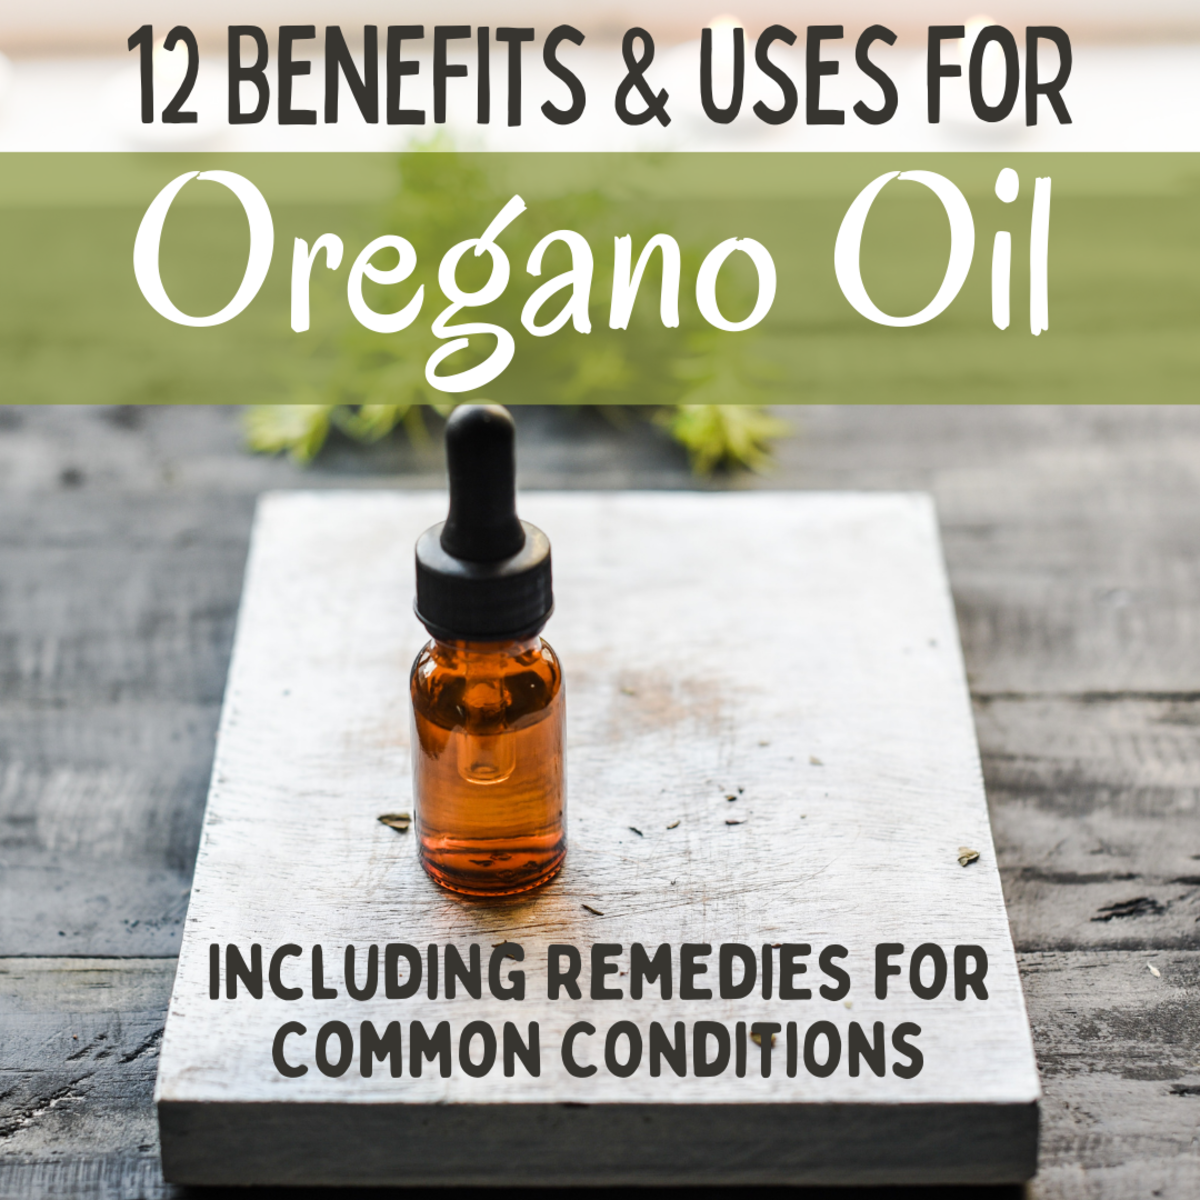 12 Benefits and Uses for Oregano Oil Including Remedies for Common Conditions